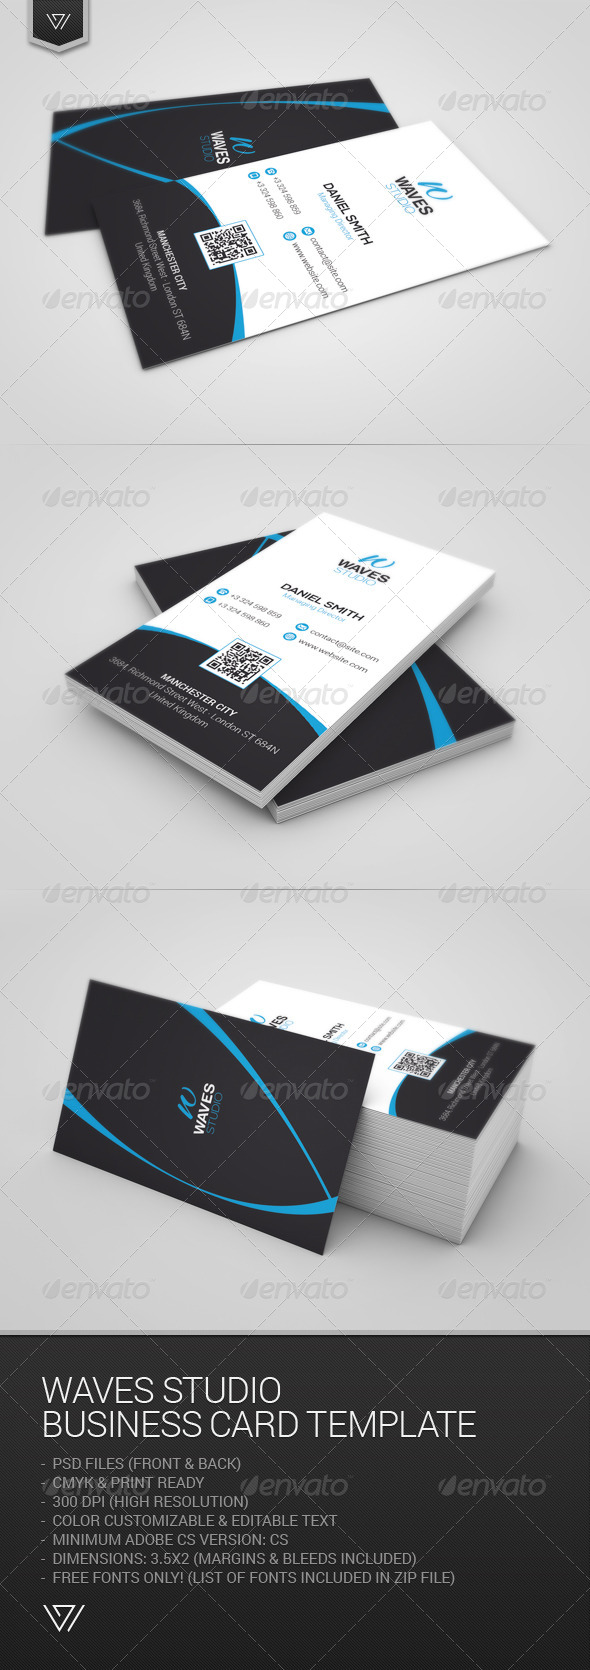 GraphicRiver Waves Studio Business Card 7668535